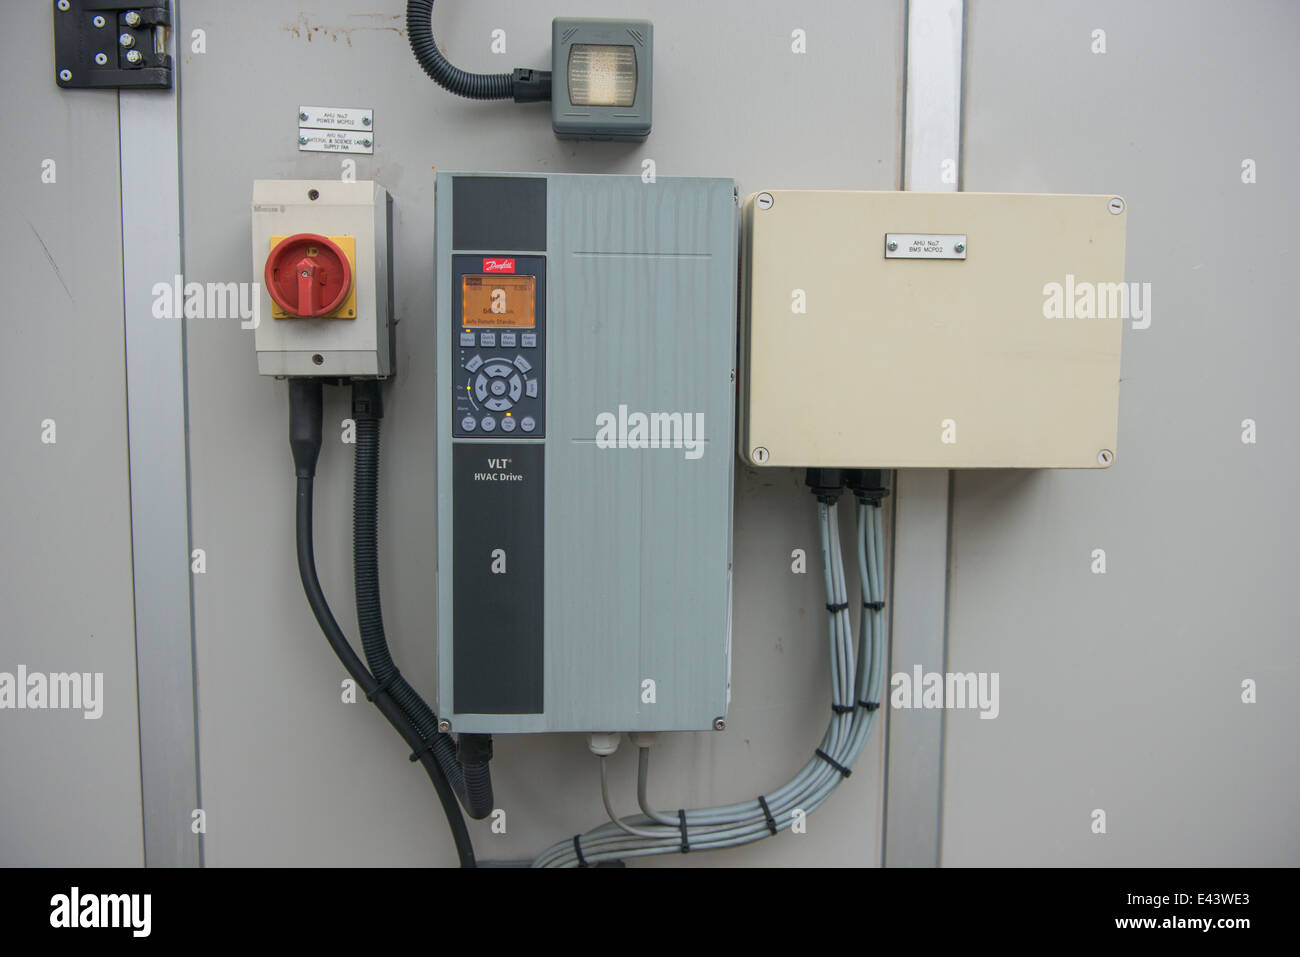 hight resolution of air handling unit control panel